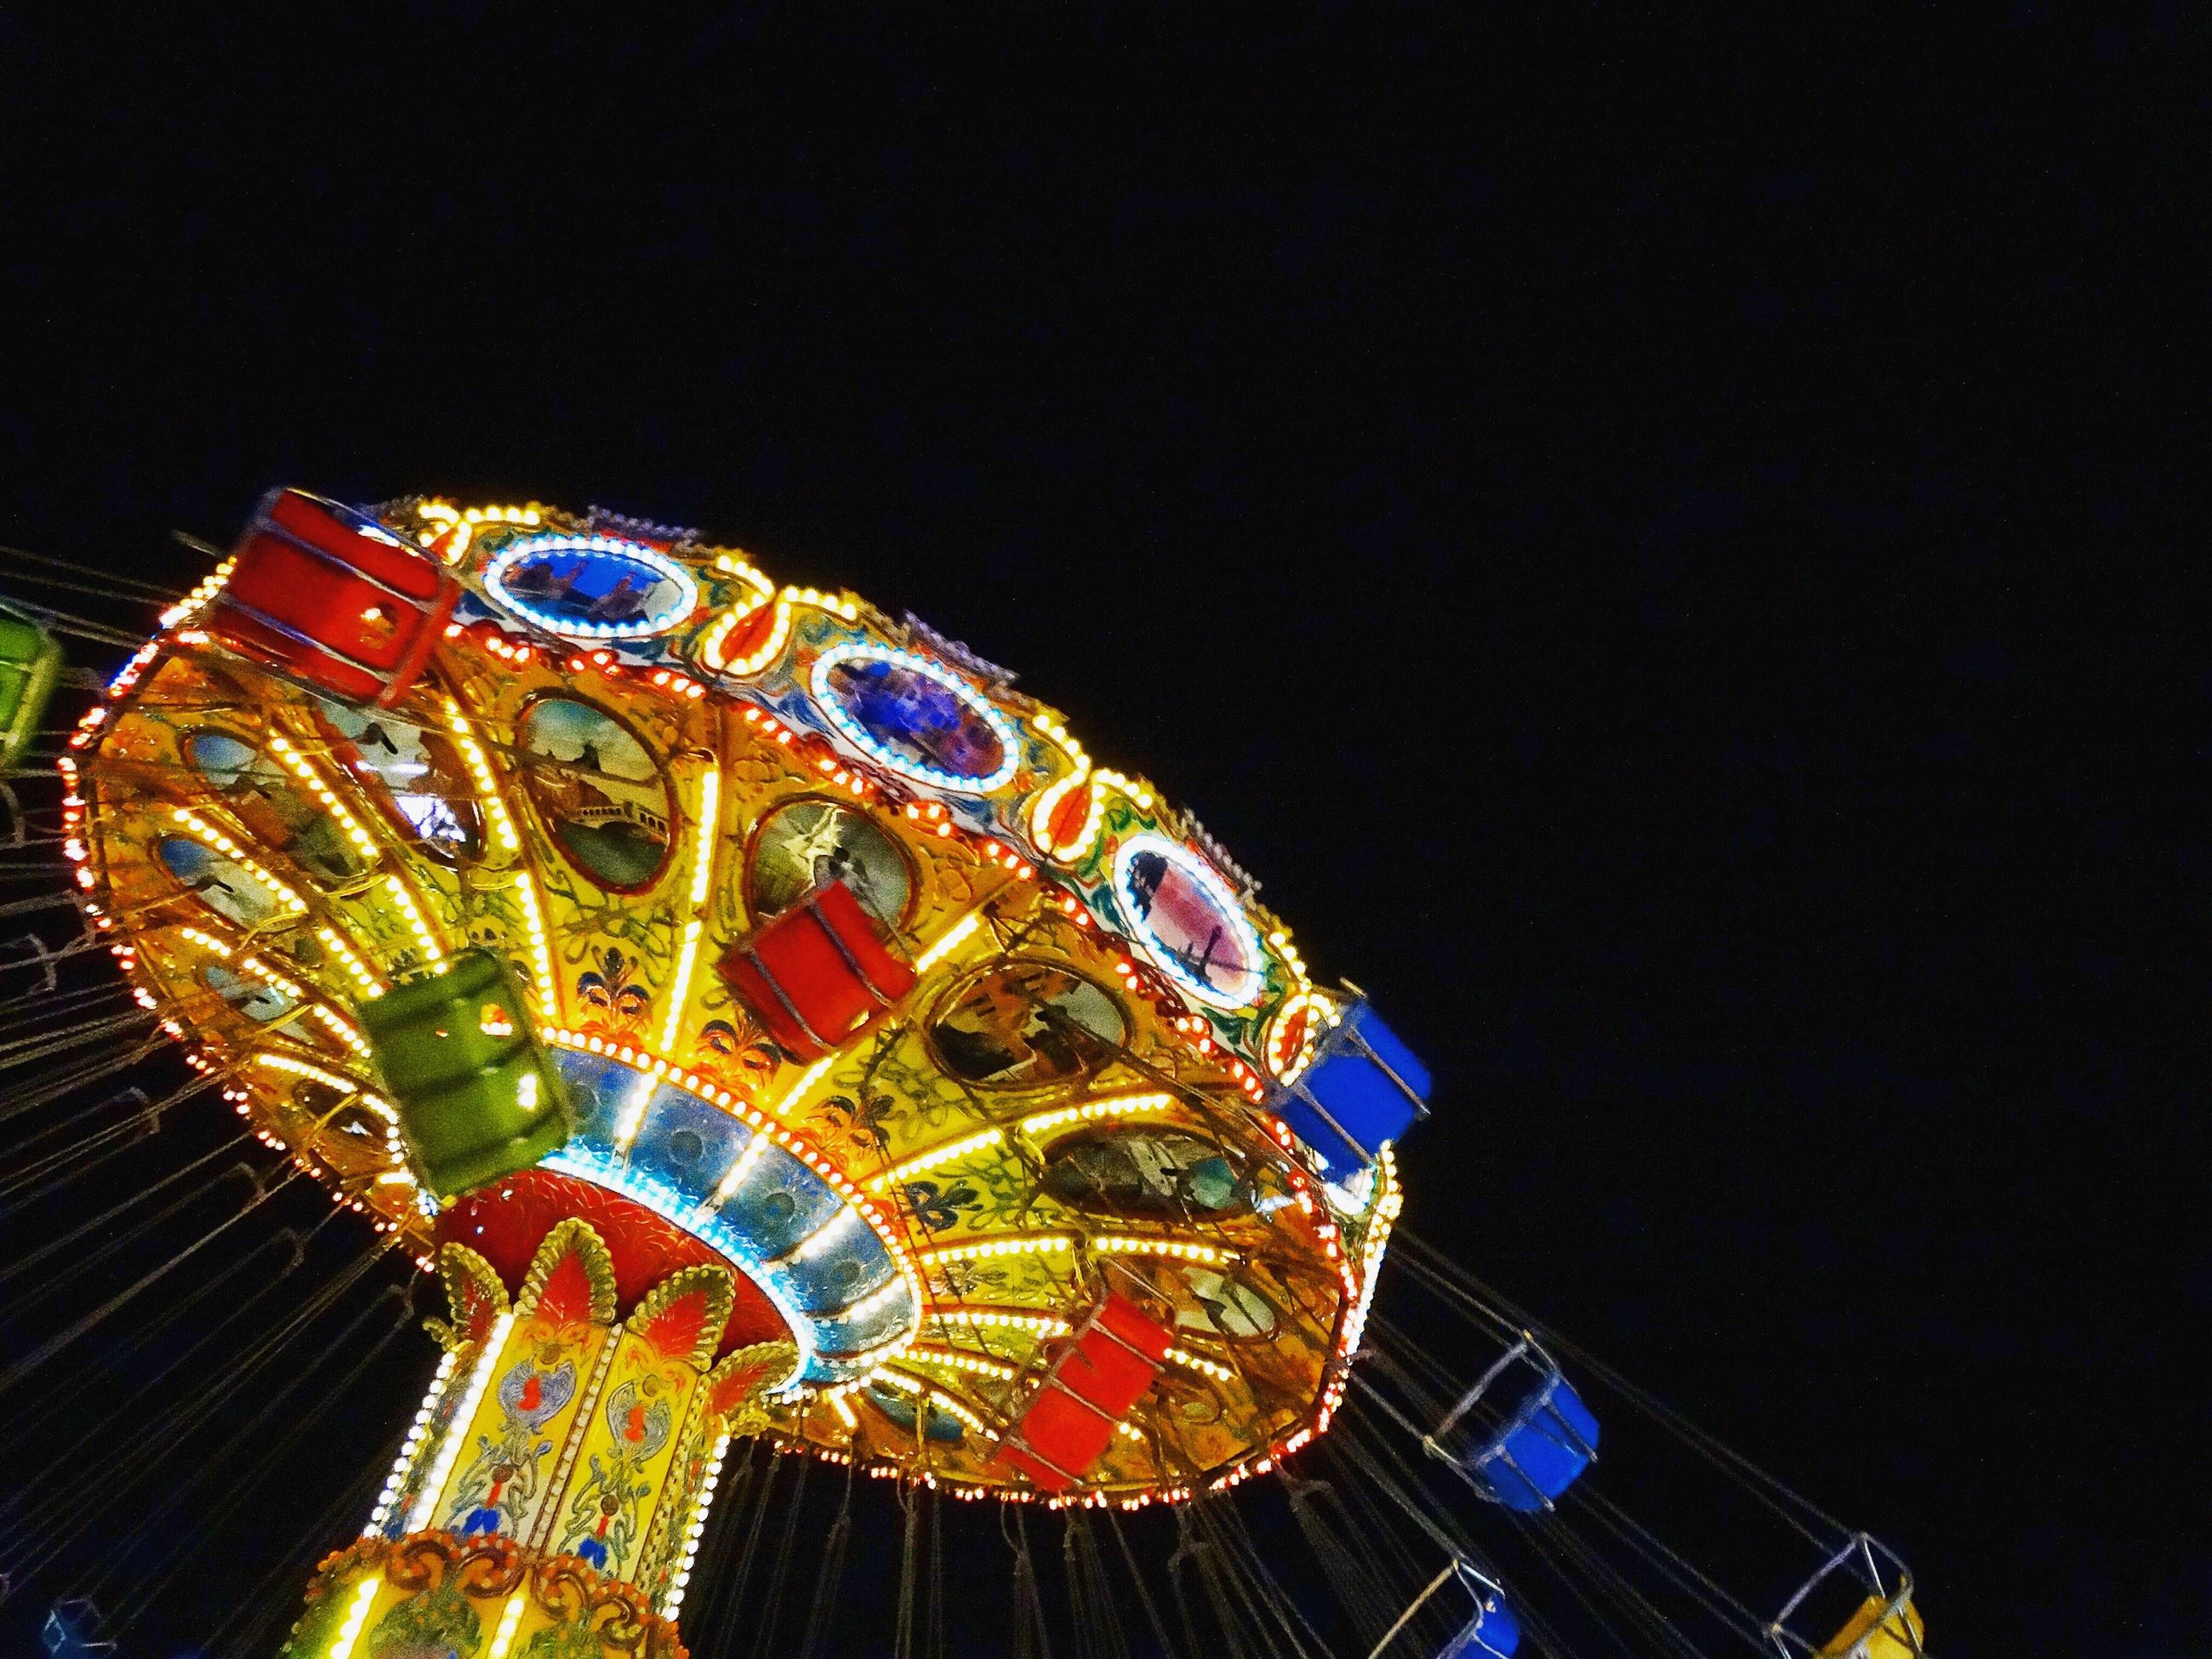 amusement park, night, illuminated, arts culture and entertainment, amusement park ride, low angle view, black background, multi colored, clear sky, no people, carousel, ferris wheel, outdoors, sky, close-up